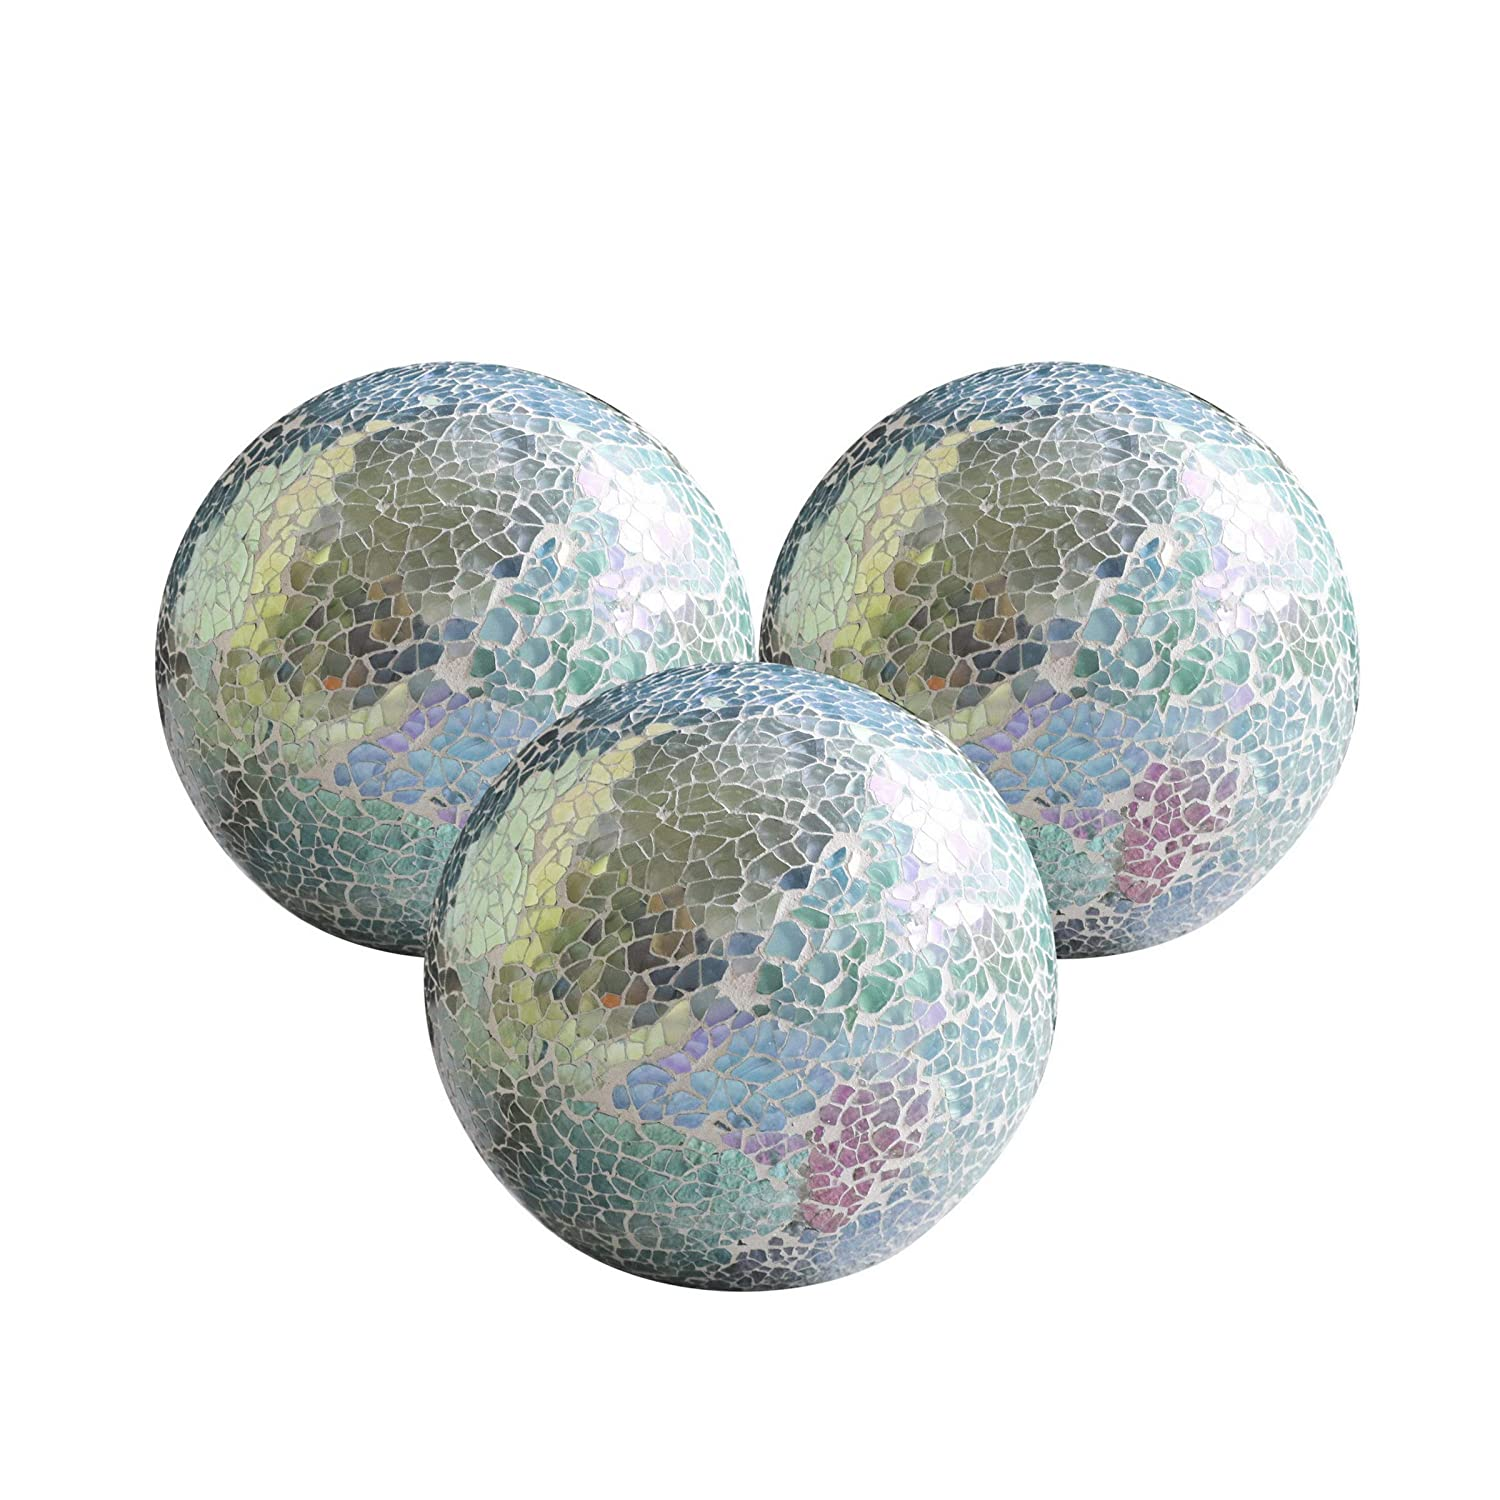 WH Housewares Decorative Balls Set of 3 Glass Mosaic Sphere Dia 4